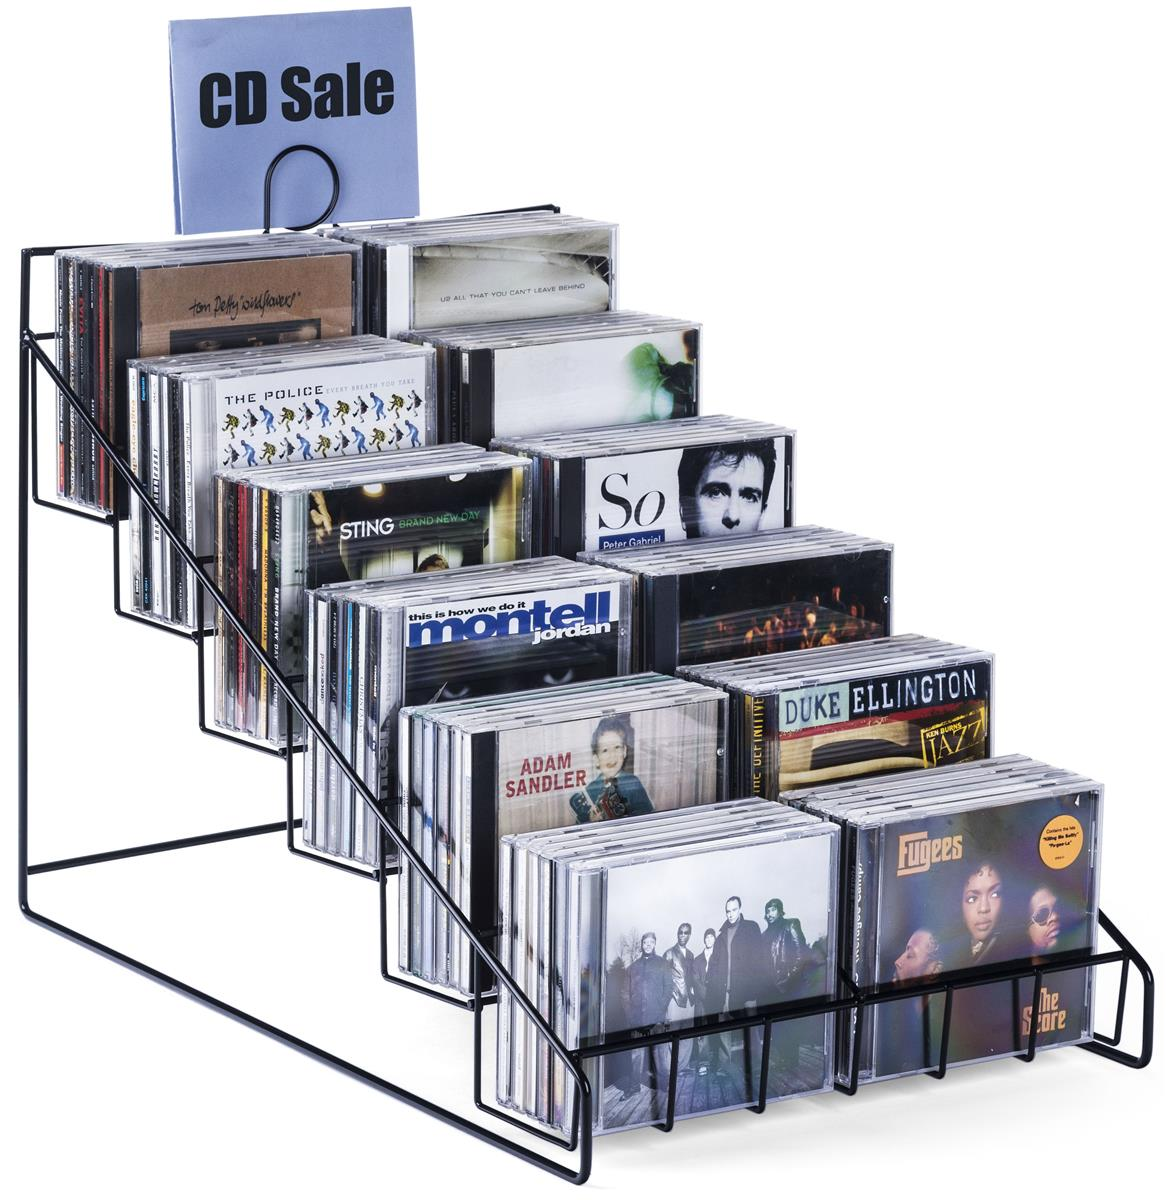 Countertop Book Display Countertop Dvd Displays Stands For Tables